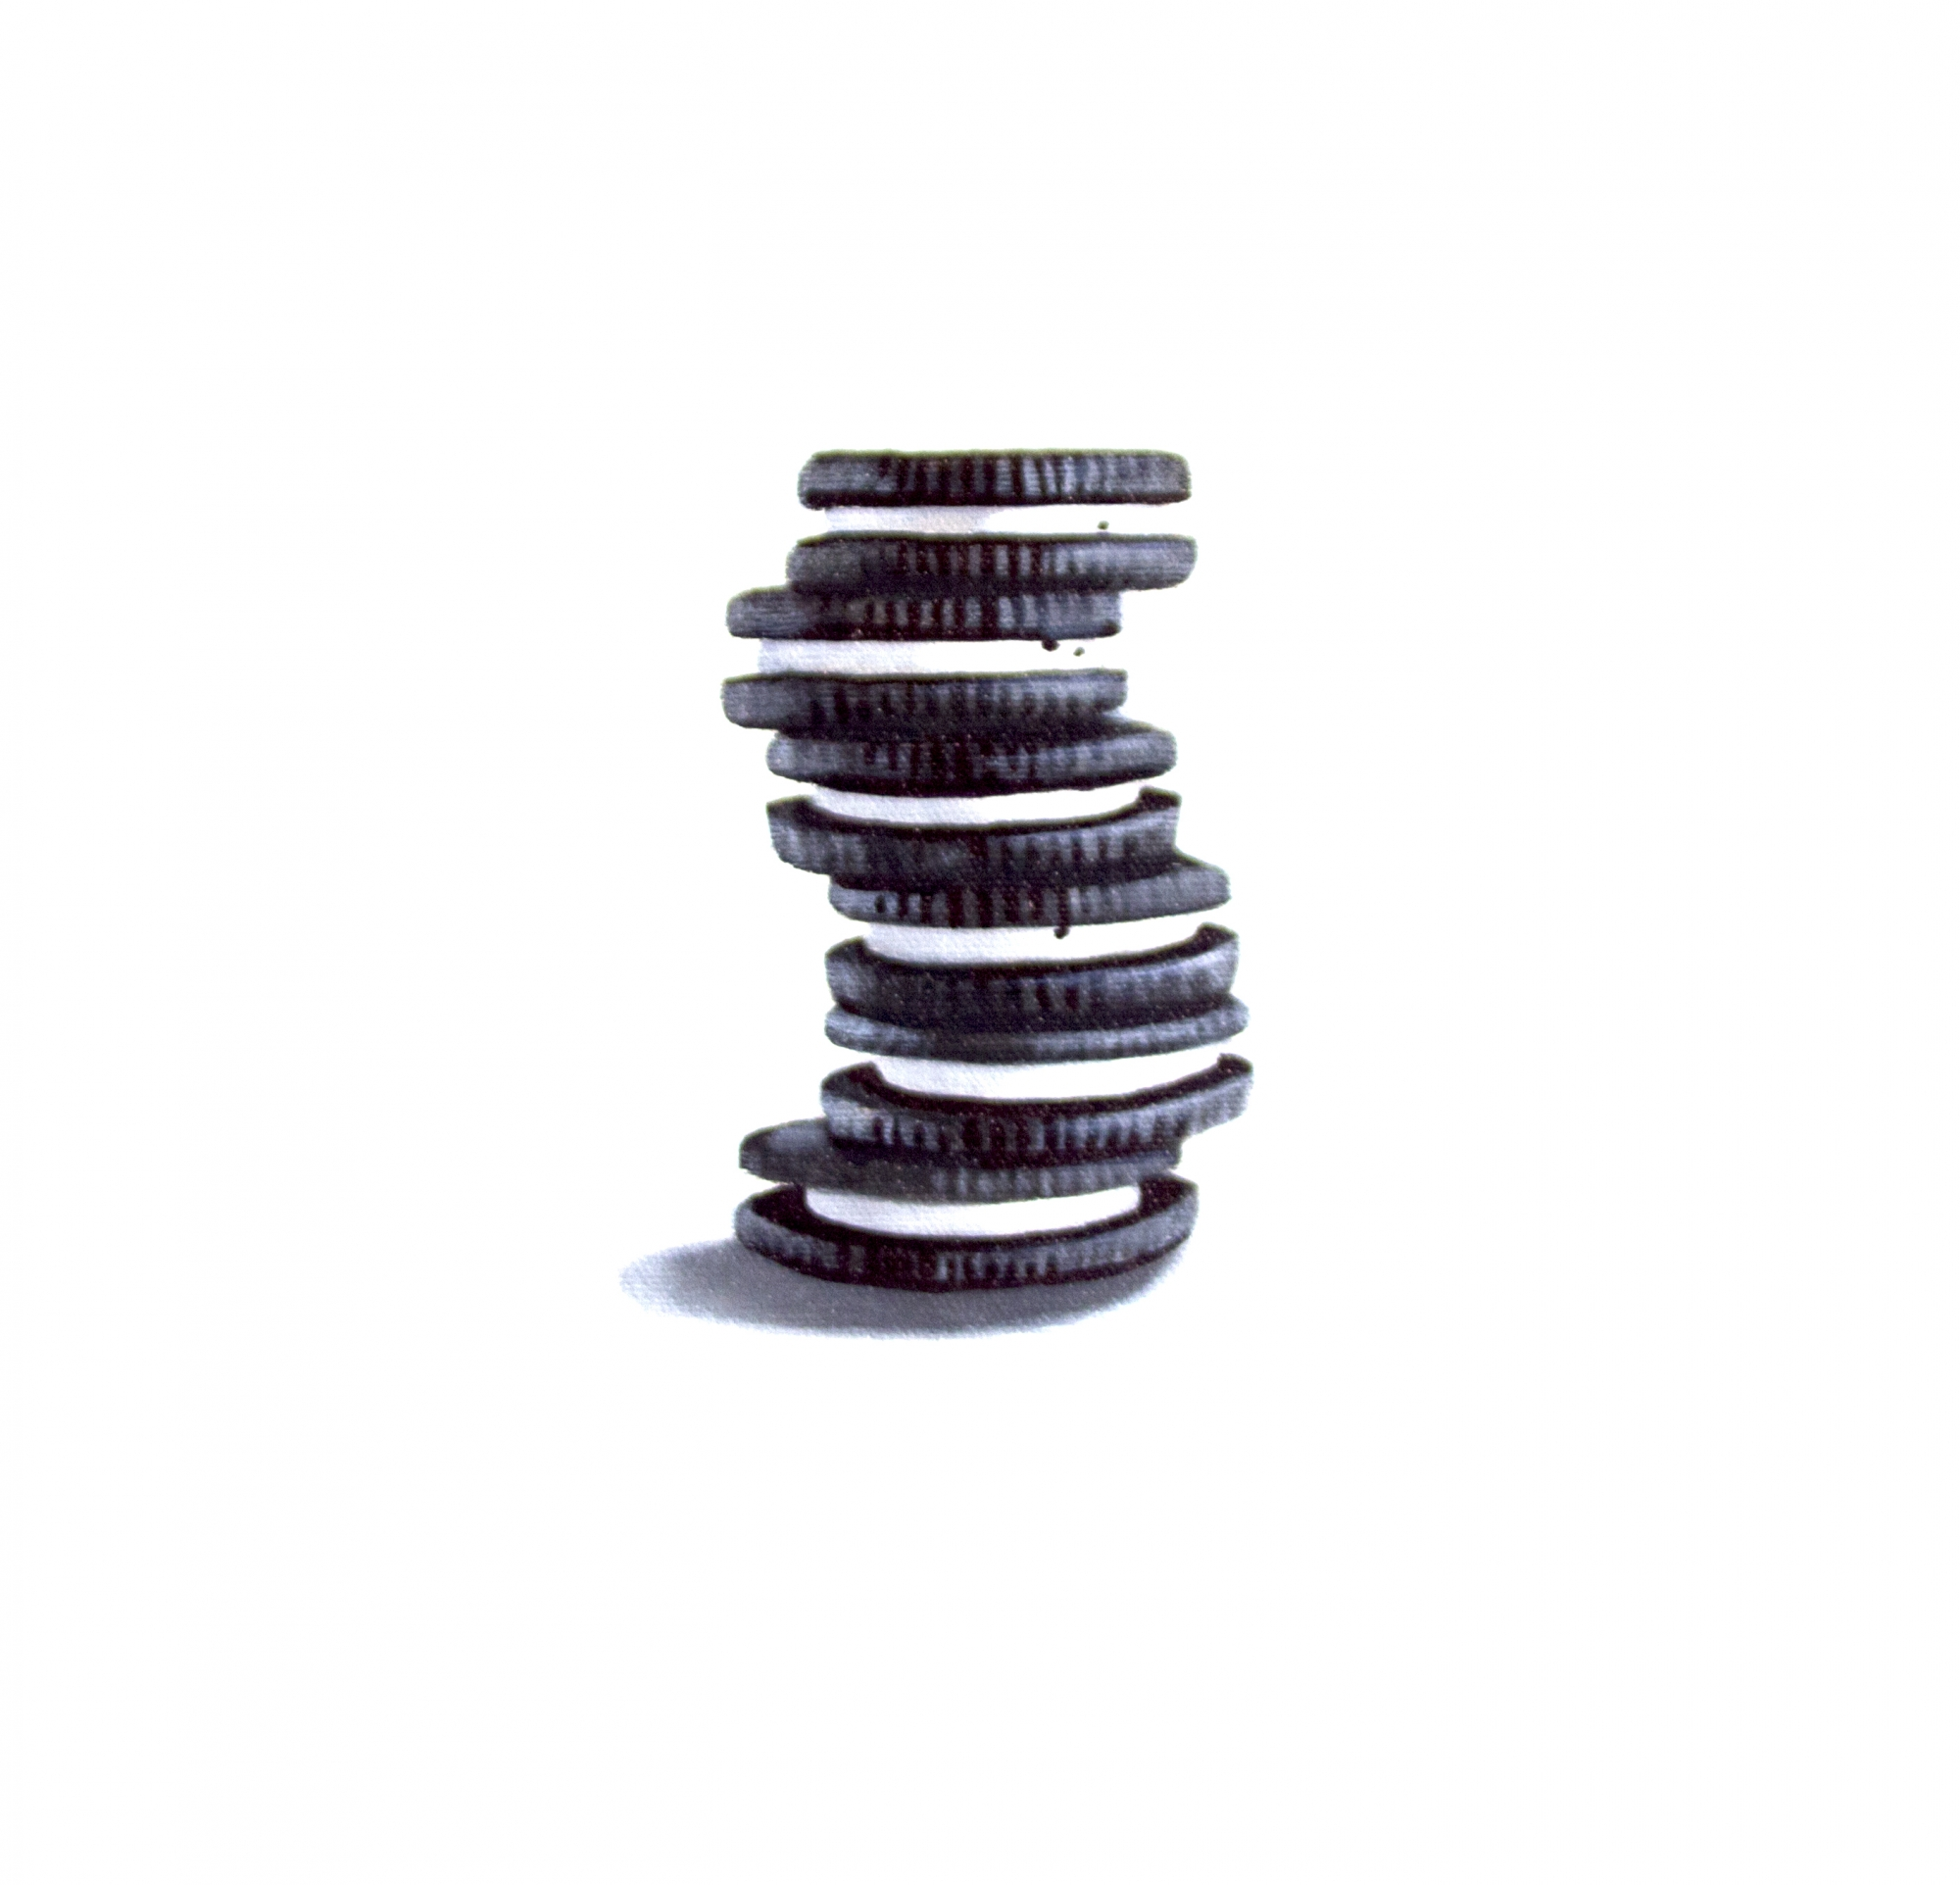 Tasting Room - Oreo Tower by Erin Rothstein